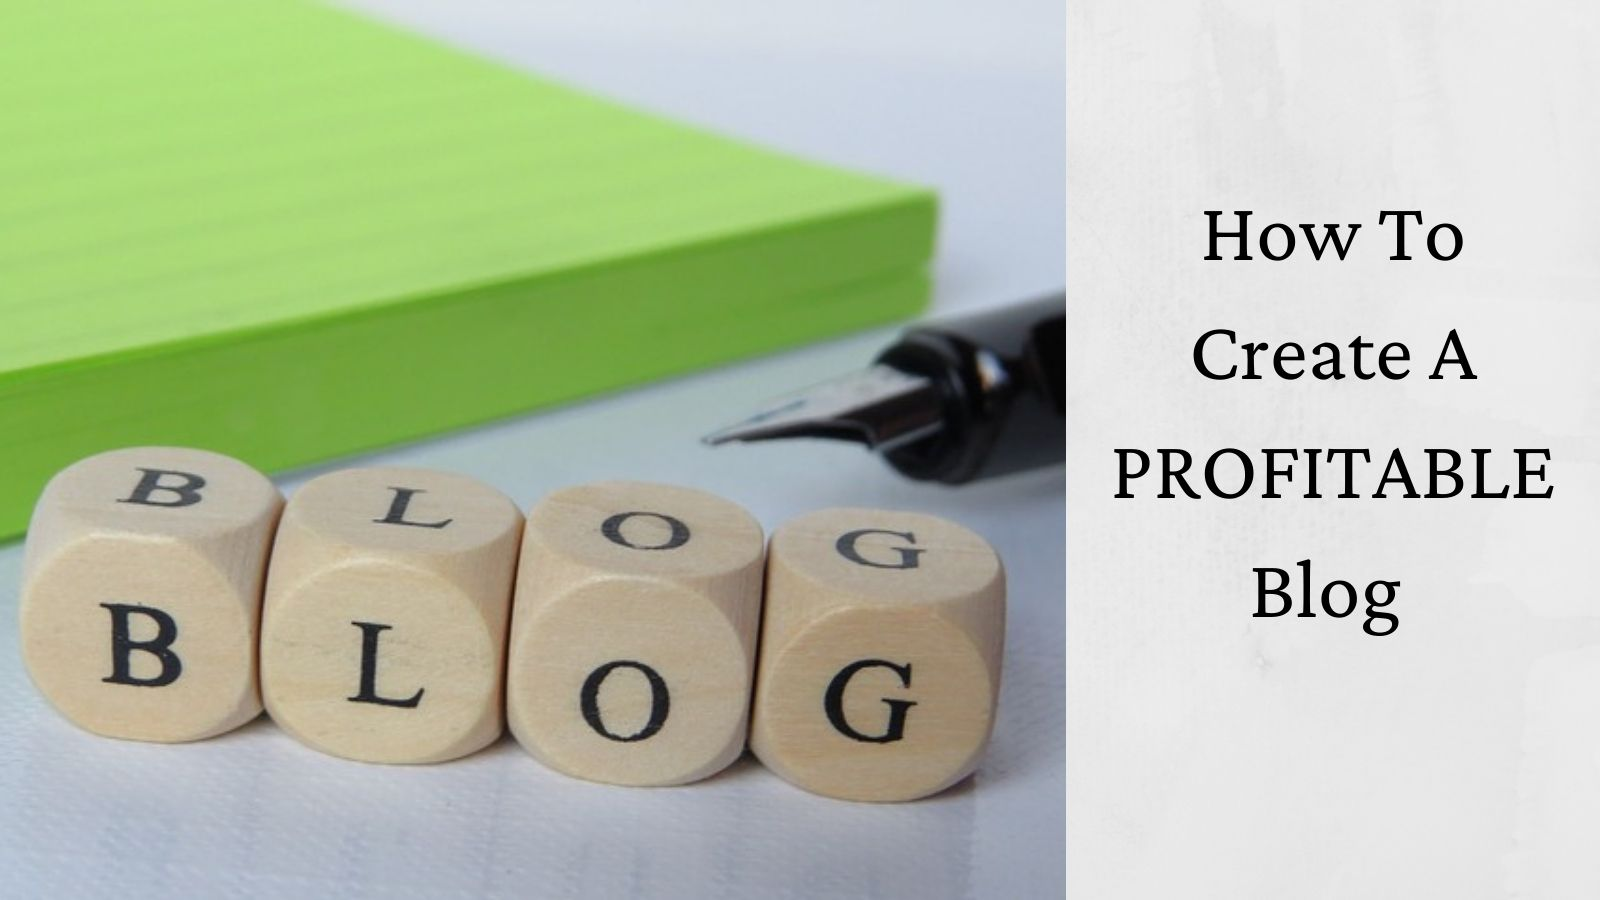 How To Create A Profitable Blog - The Word BLOG Spelled In Cubes